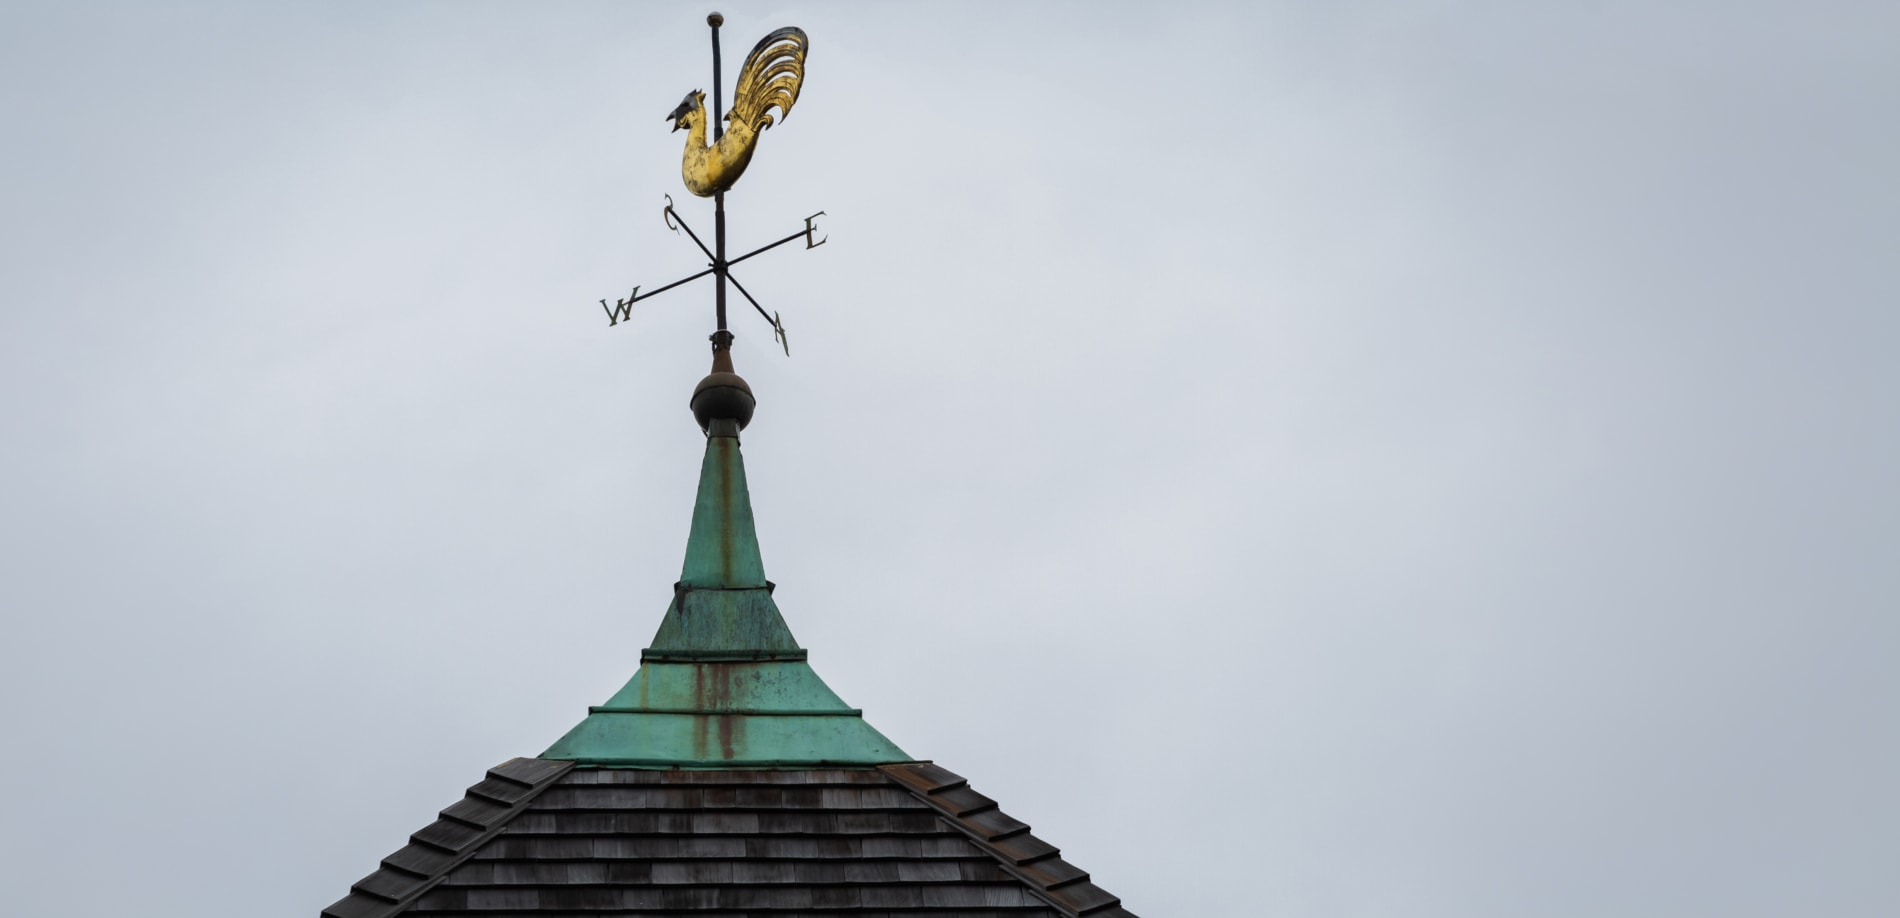 Tower with a rooster weathervane